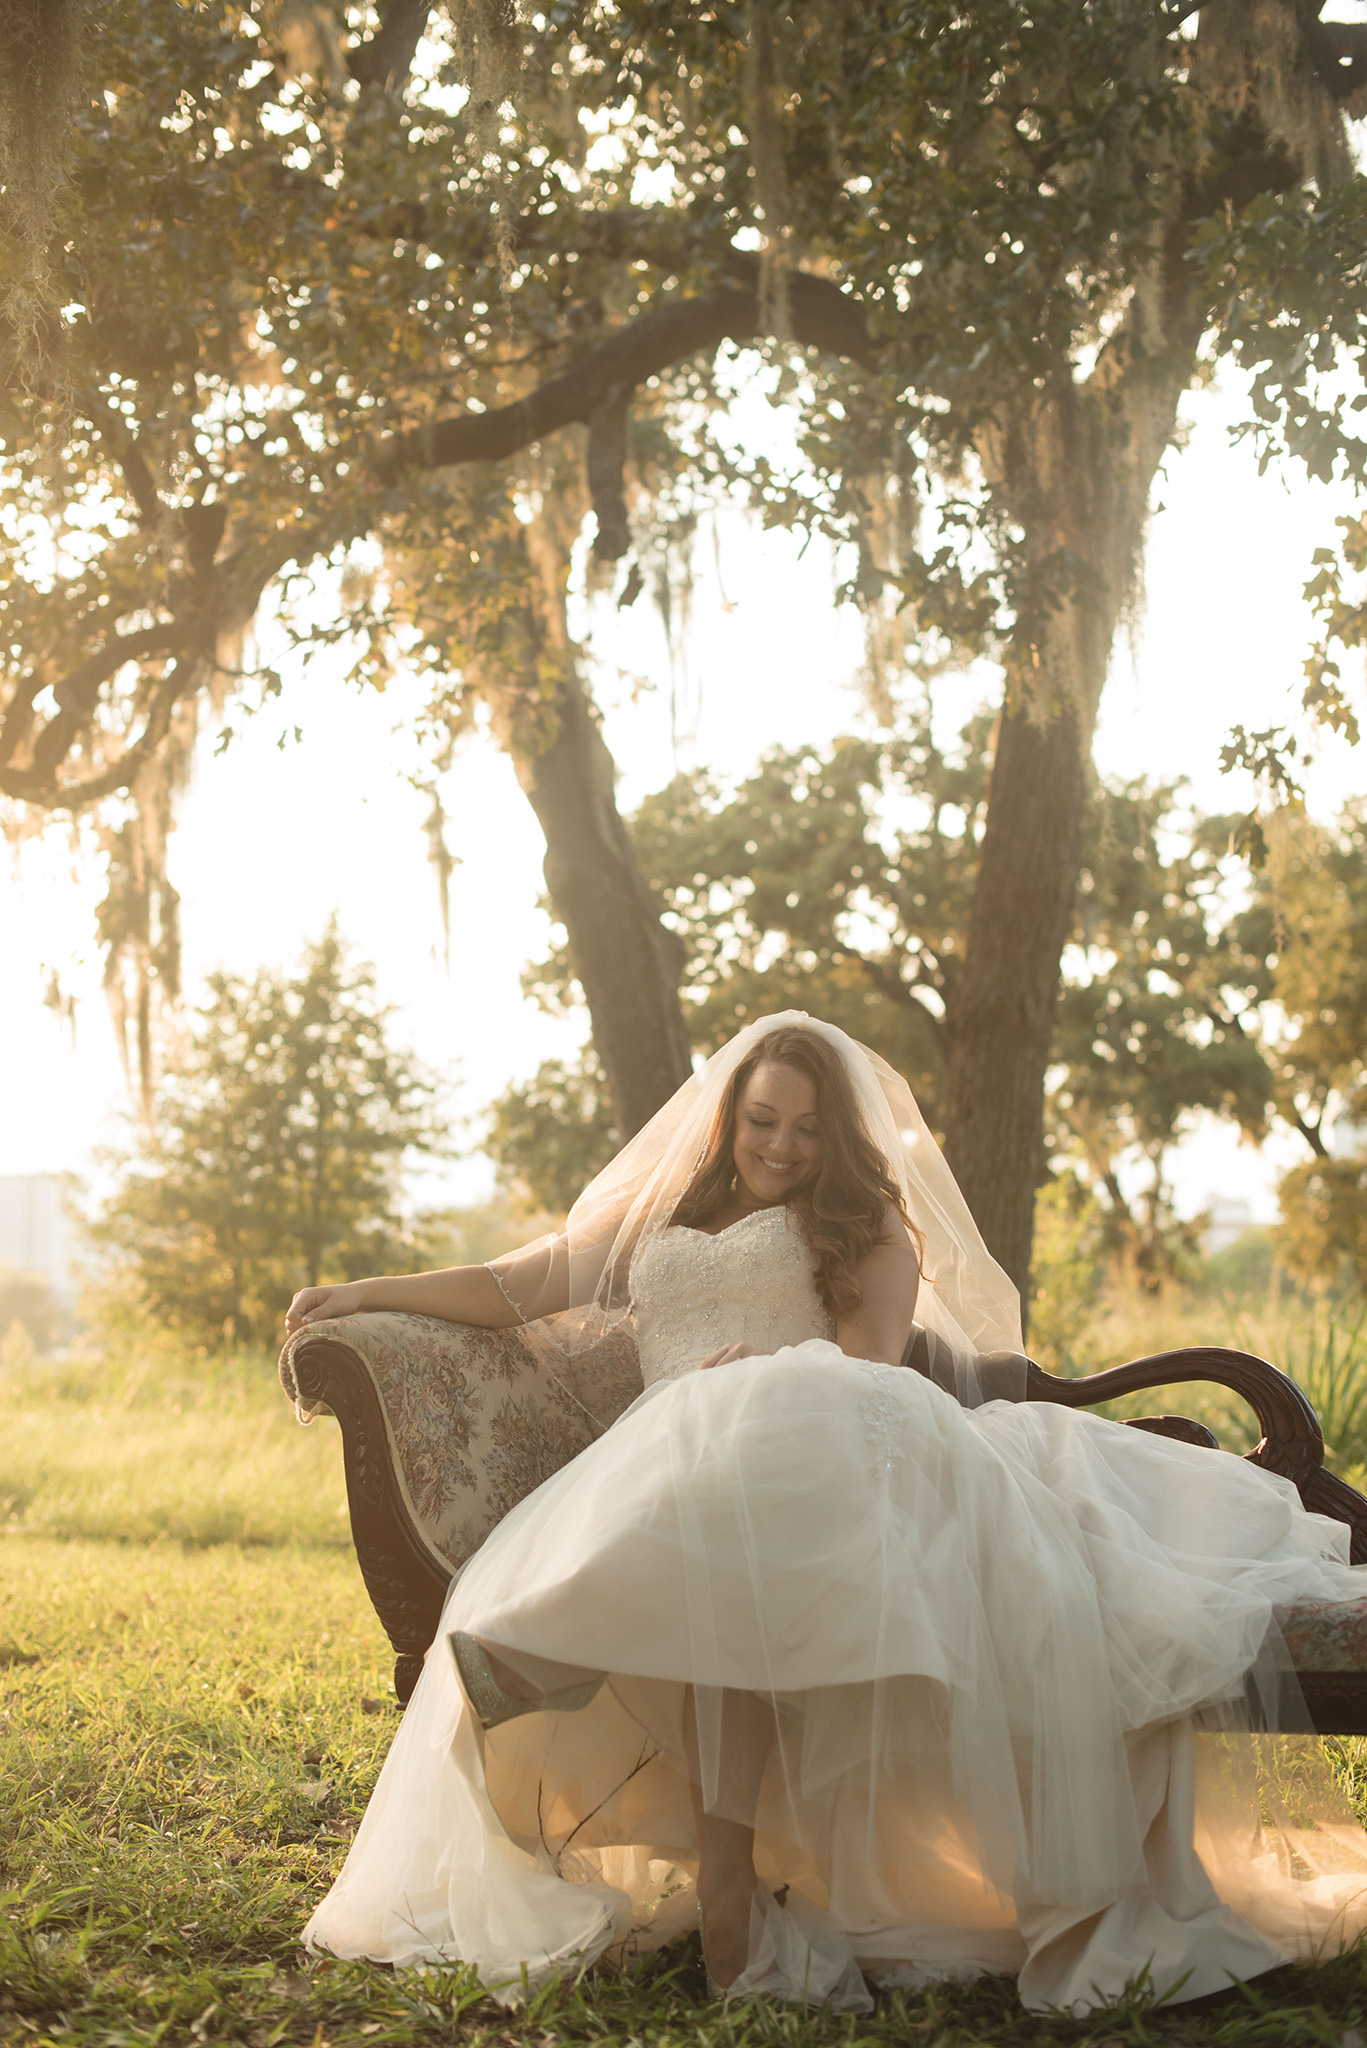 86-Boulevard-Oaks-Houston-Bridal-photo-session.jpg